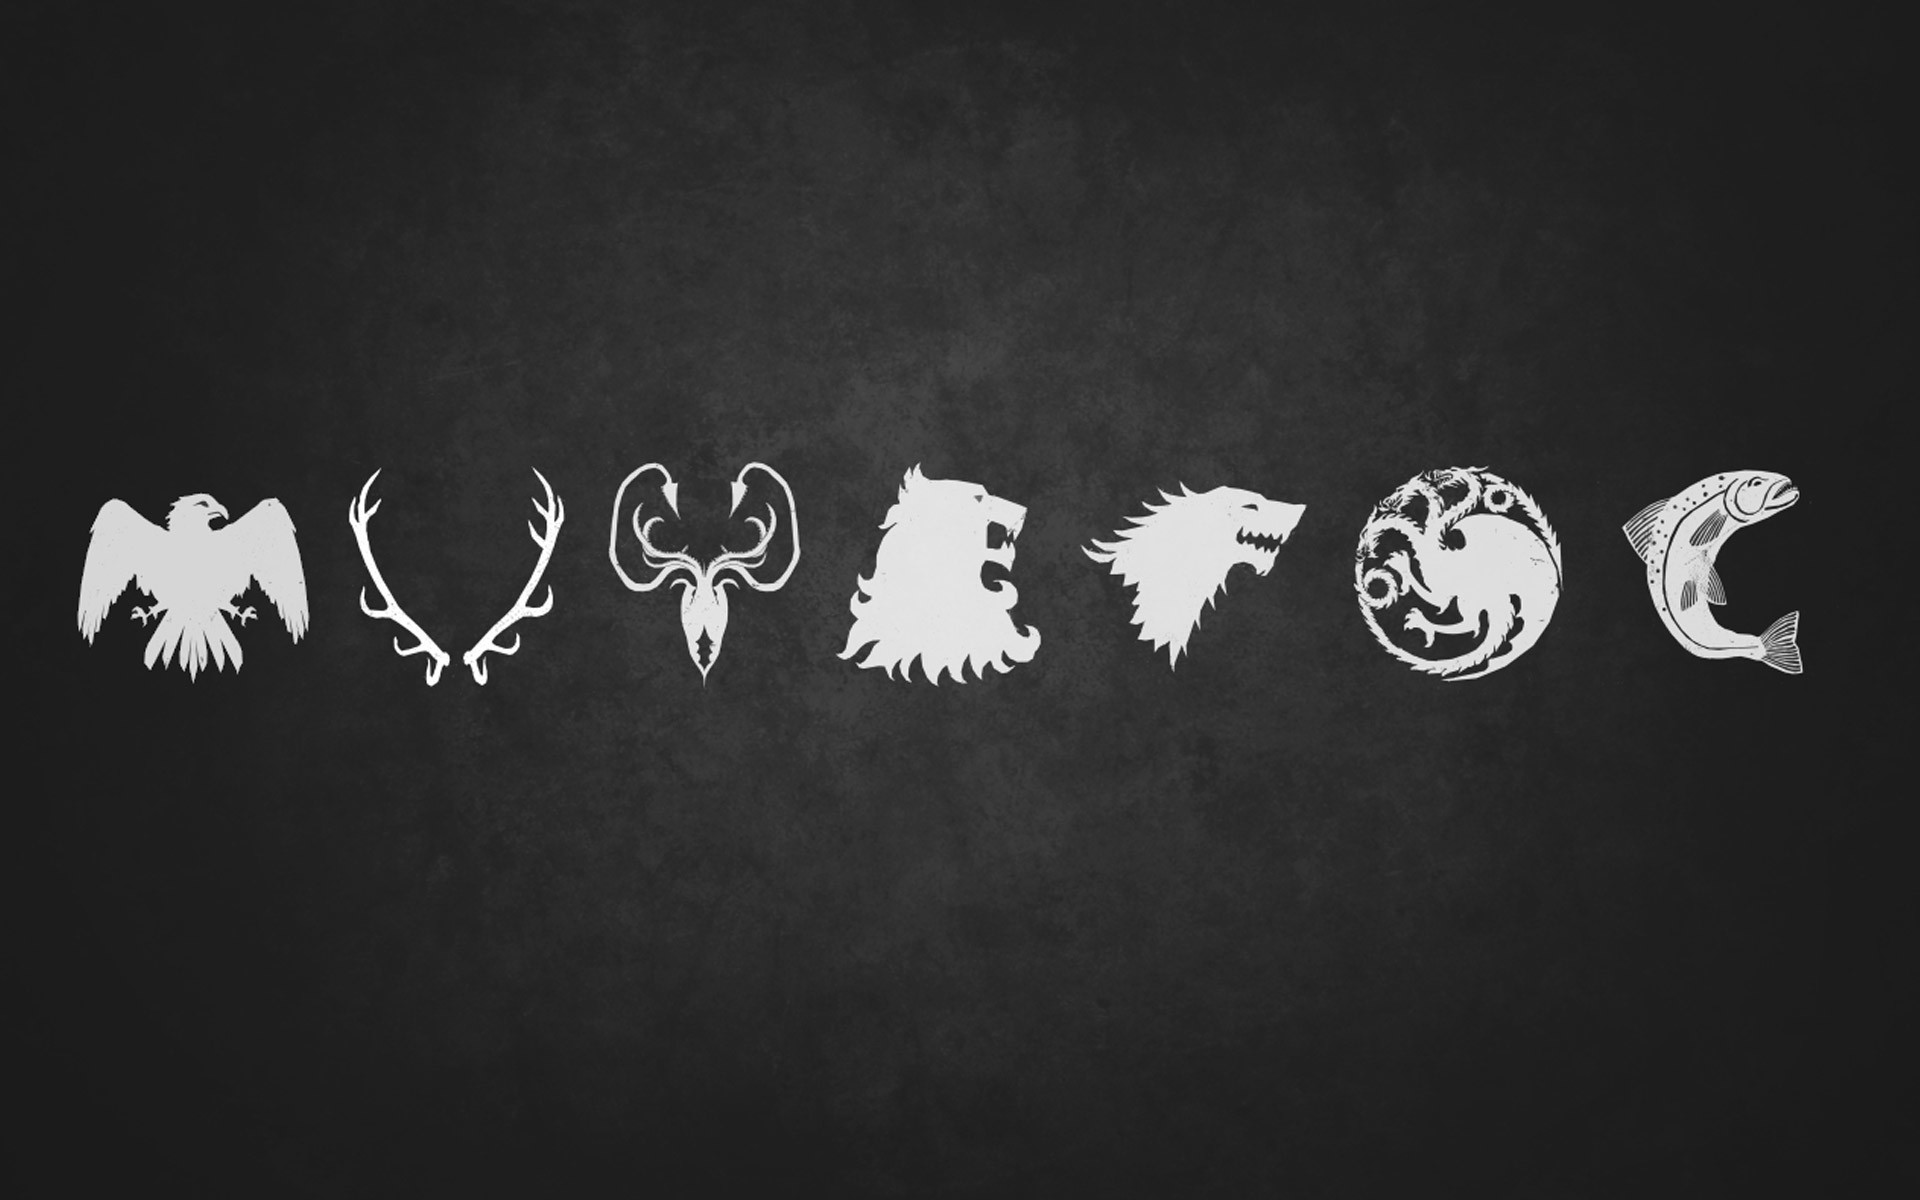 1920x1200 minimalistic Game of Thrones TV series arms House Arryn House Greyjoy House  Lannister House Stark House Targaryen House Baratheon House Tully /  Wallpaper